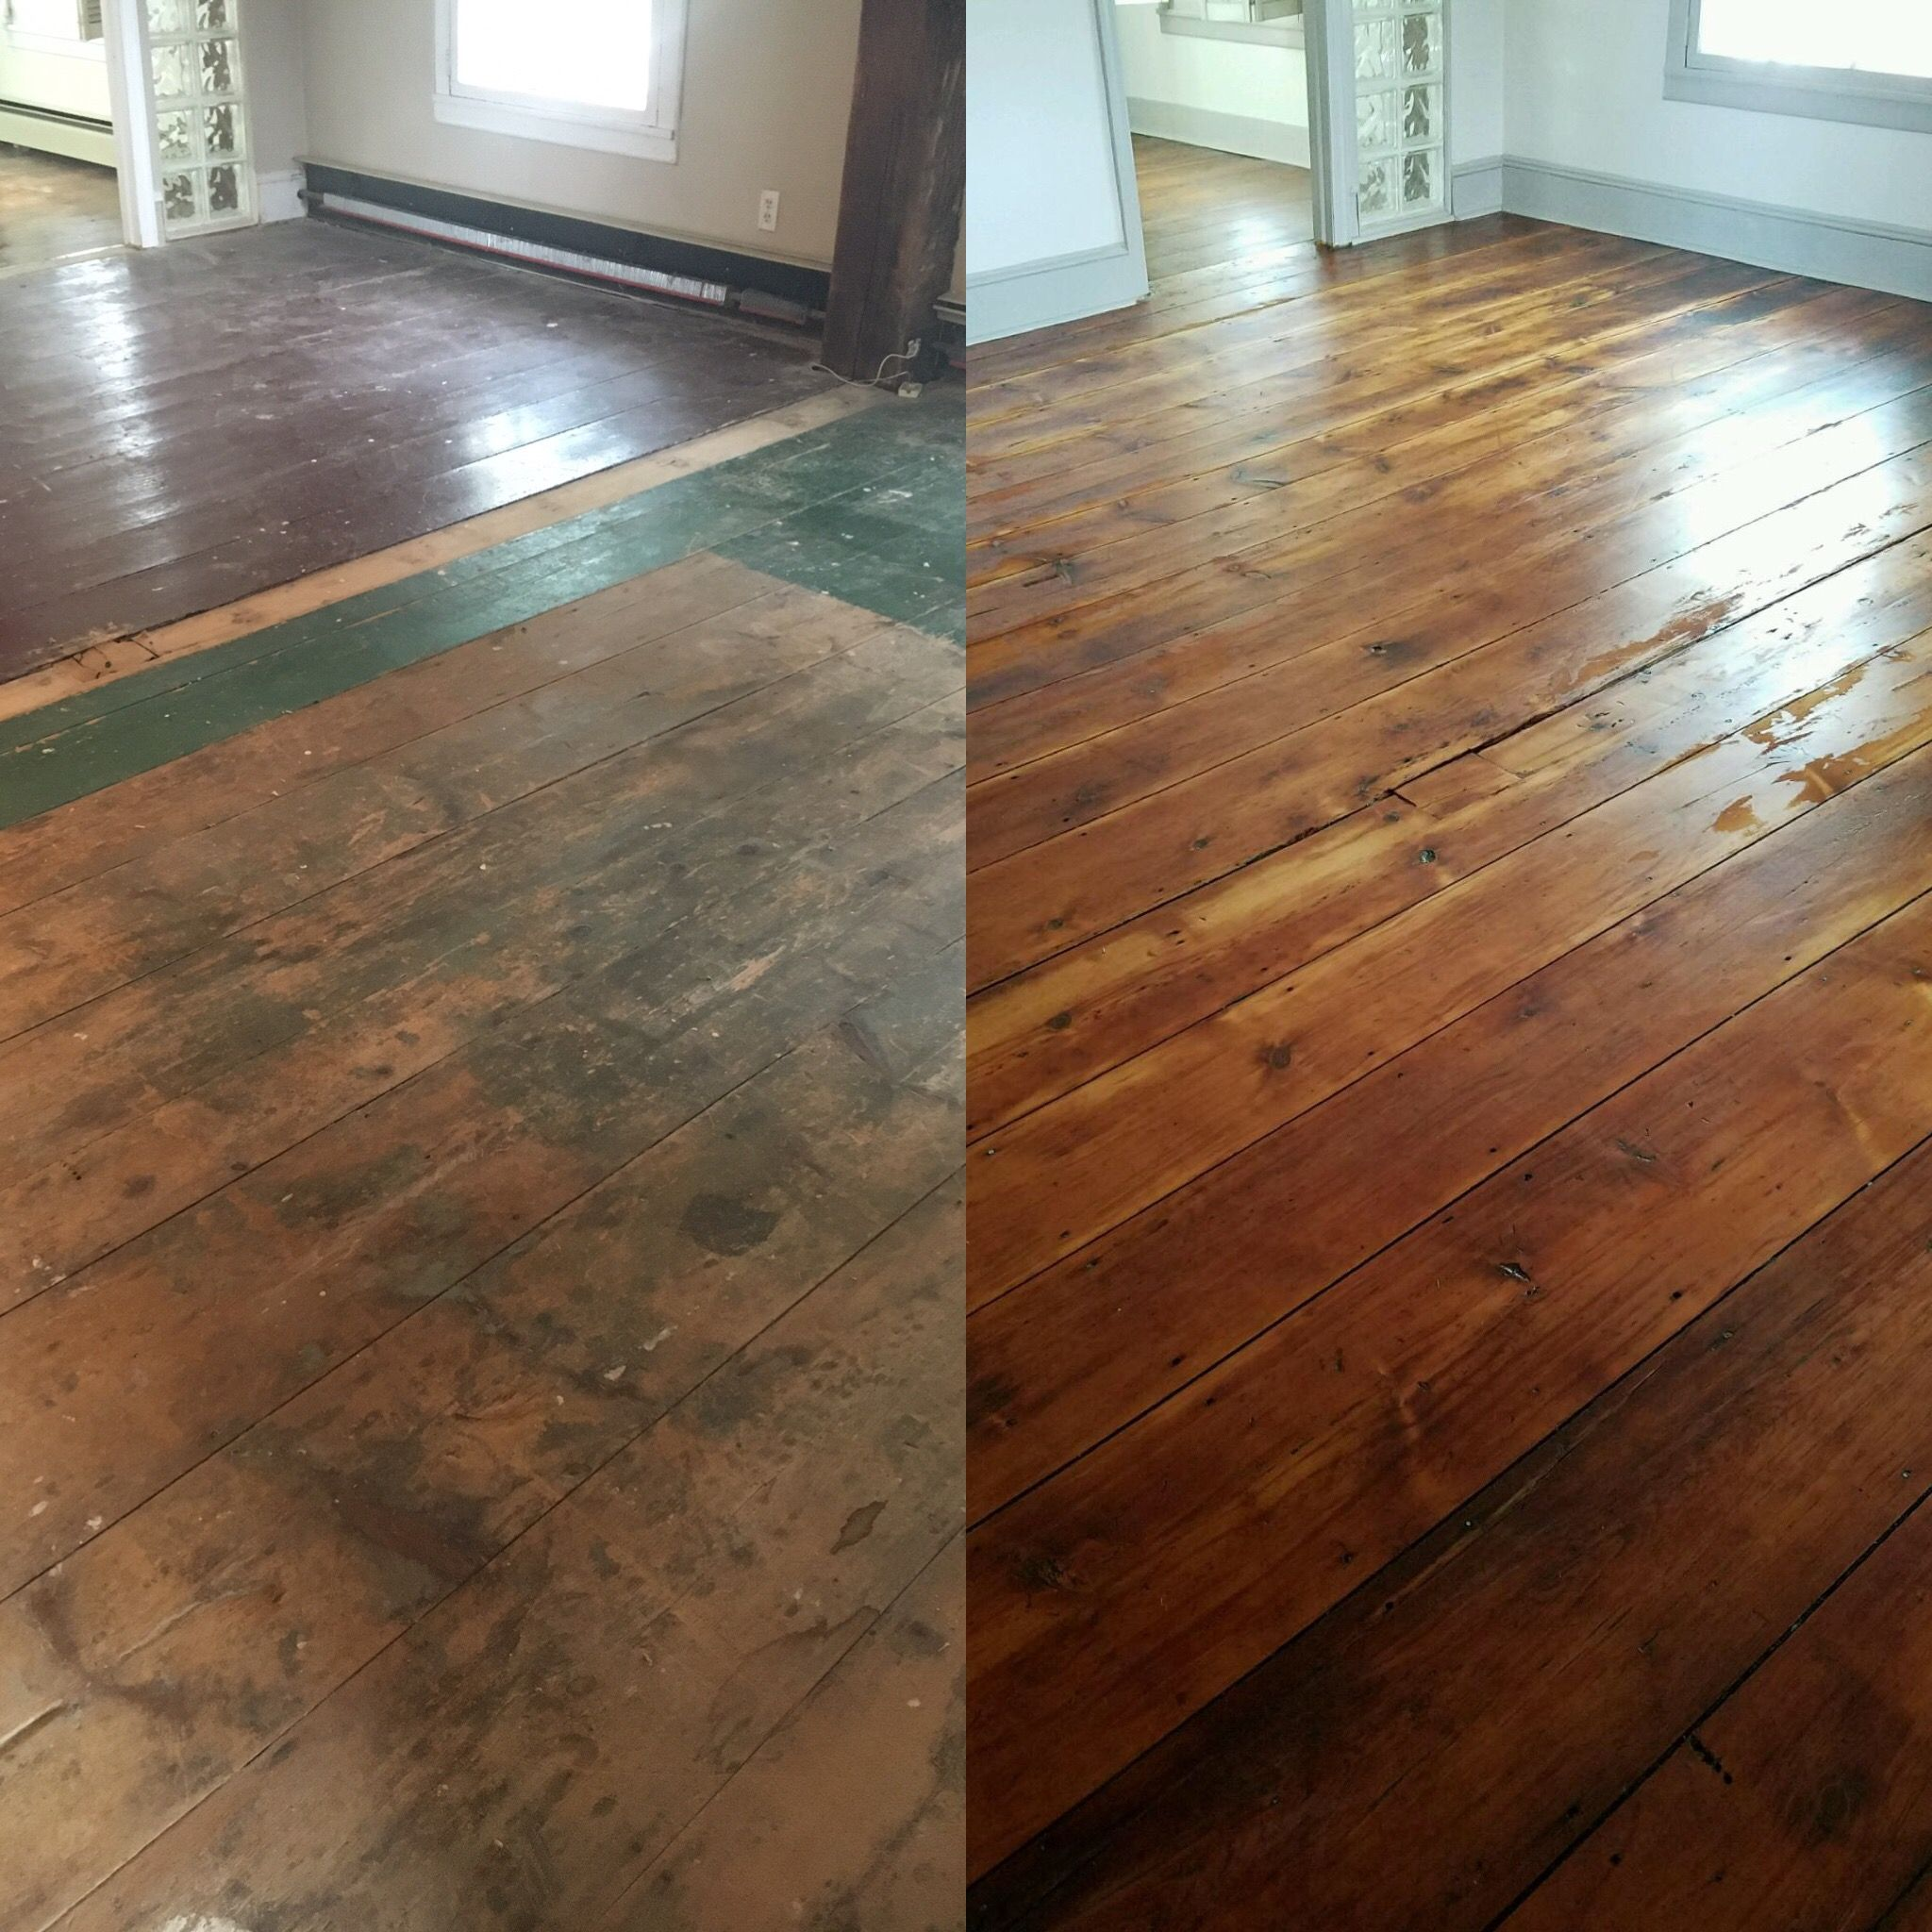 Original Wood Floors, Pumpkin Pine Floors, Circa 1840, Before And After  Refinishing Old Floors